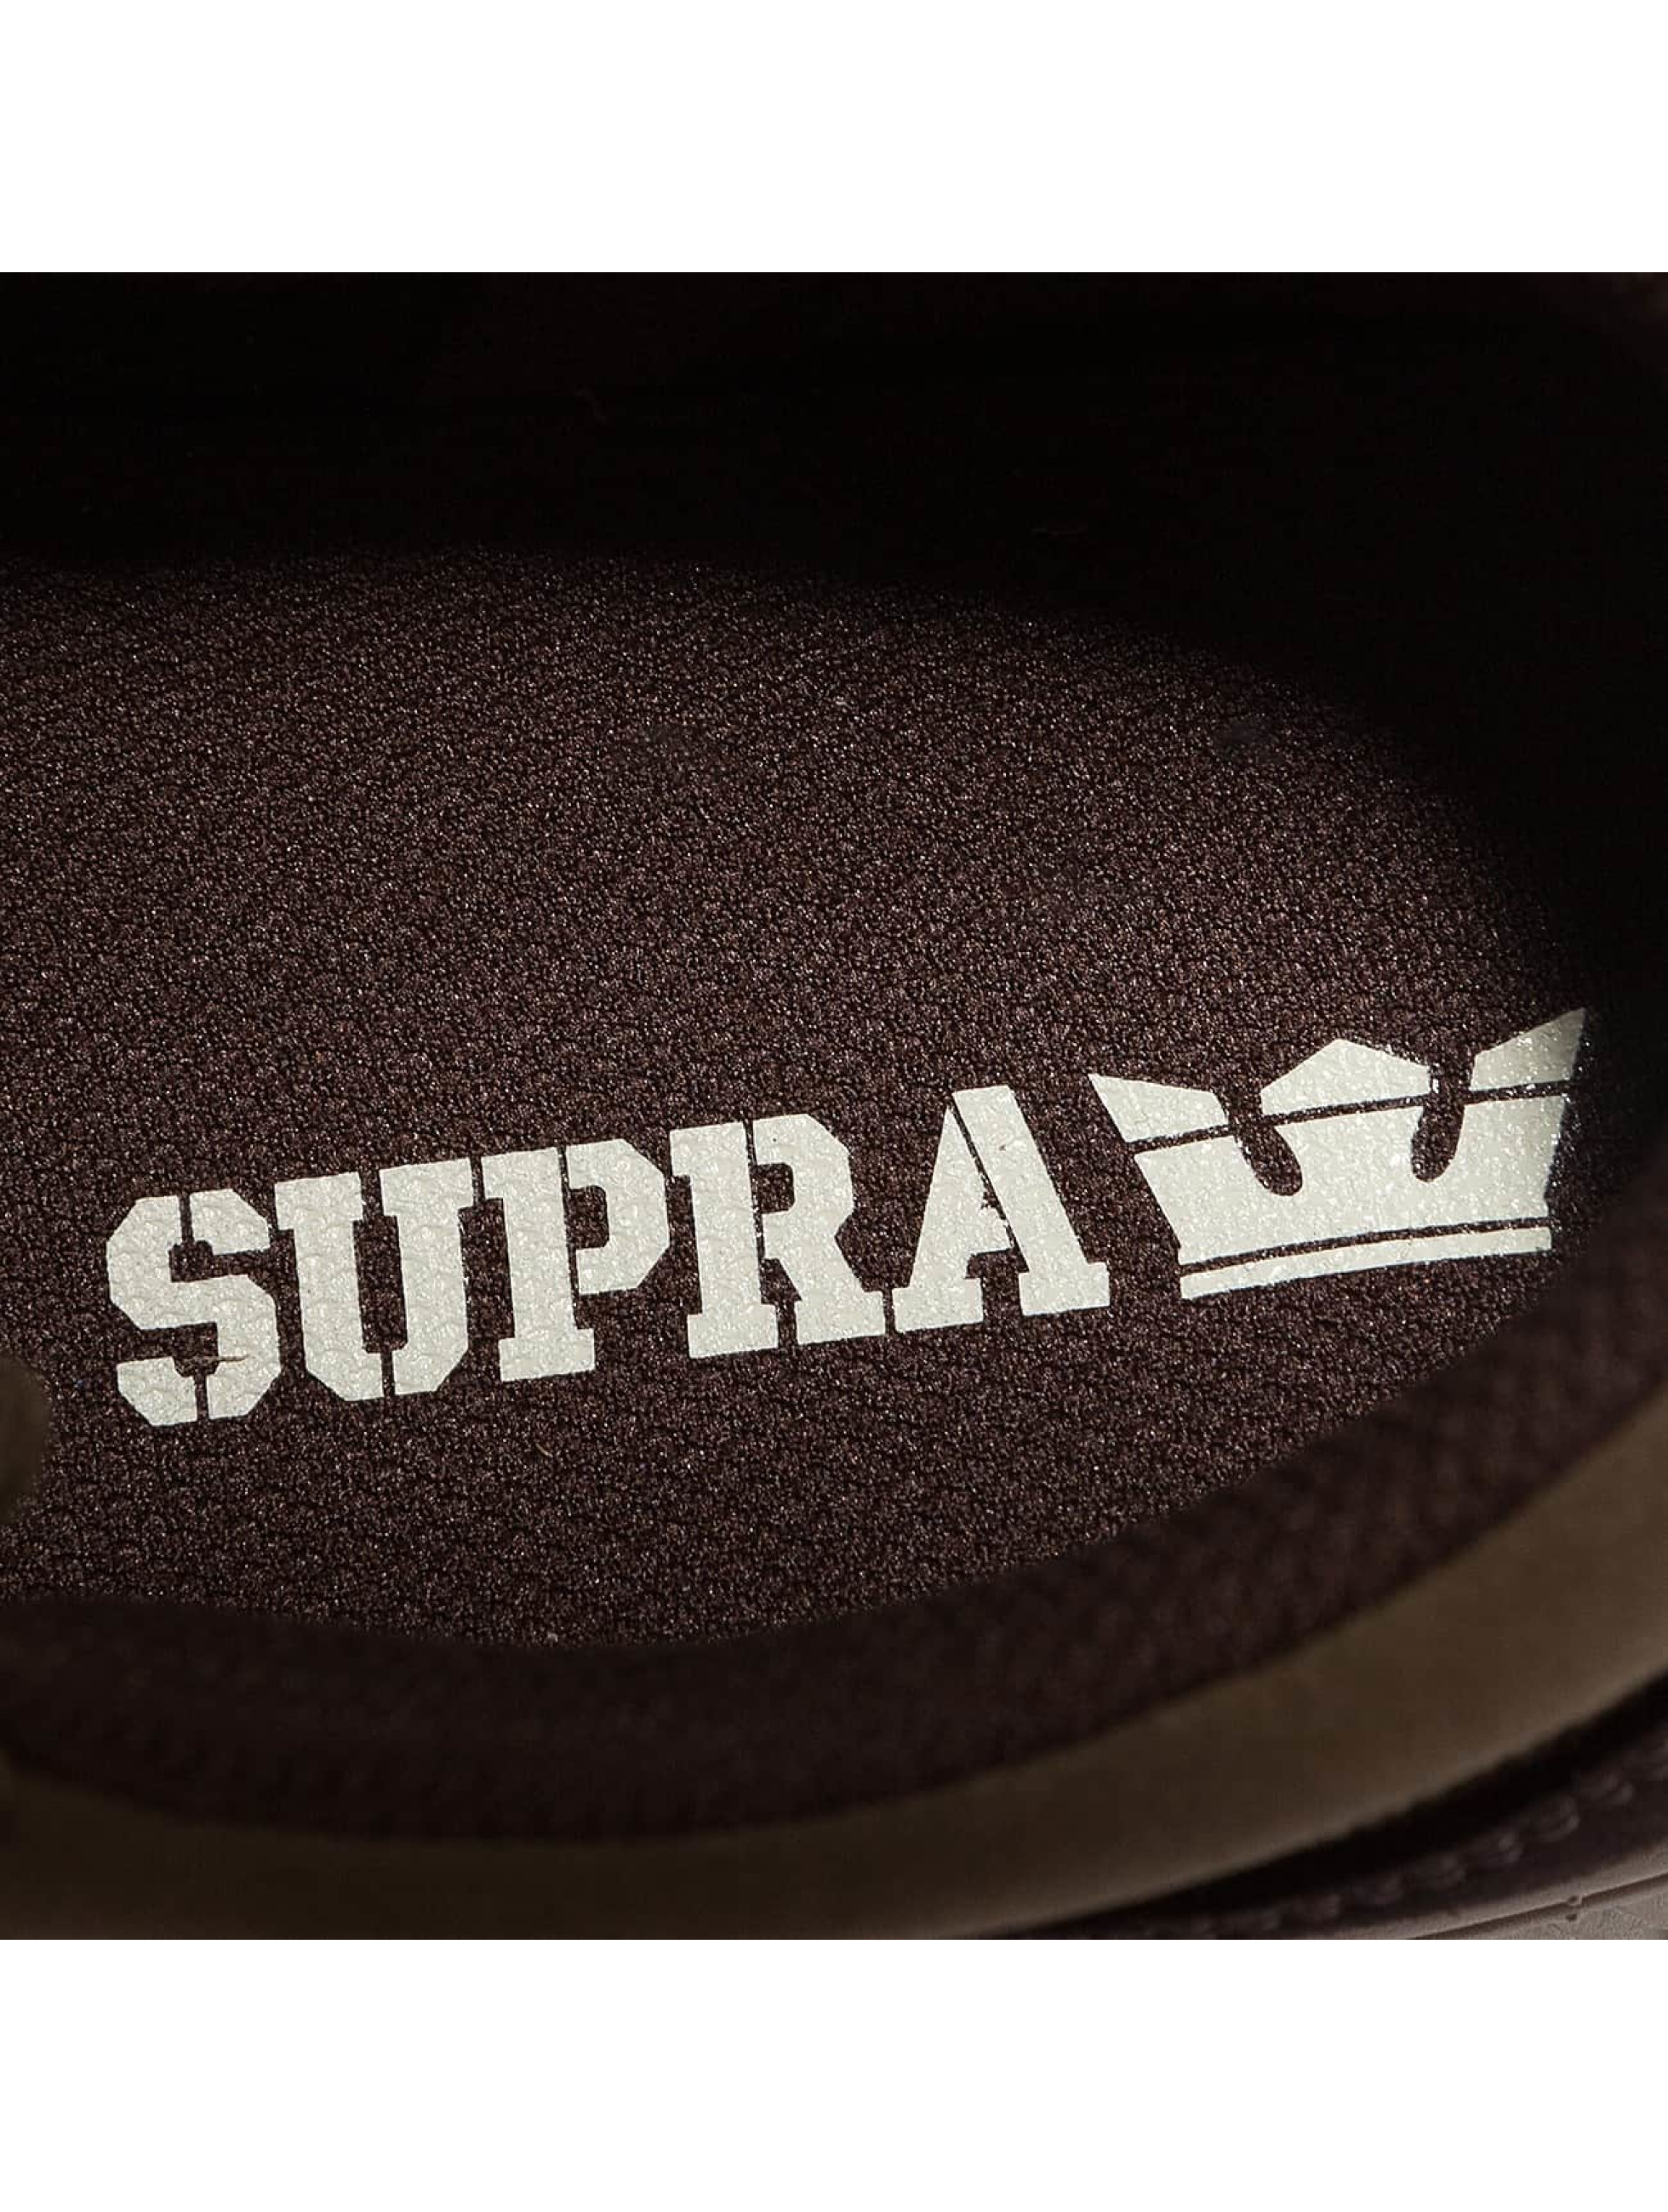 Supra Sneakers Hammer Run olive